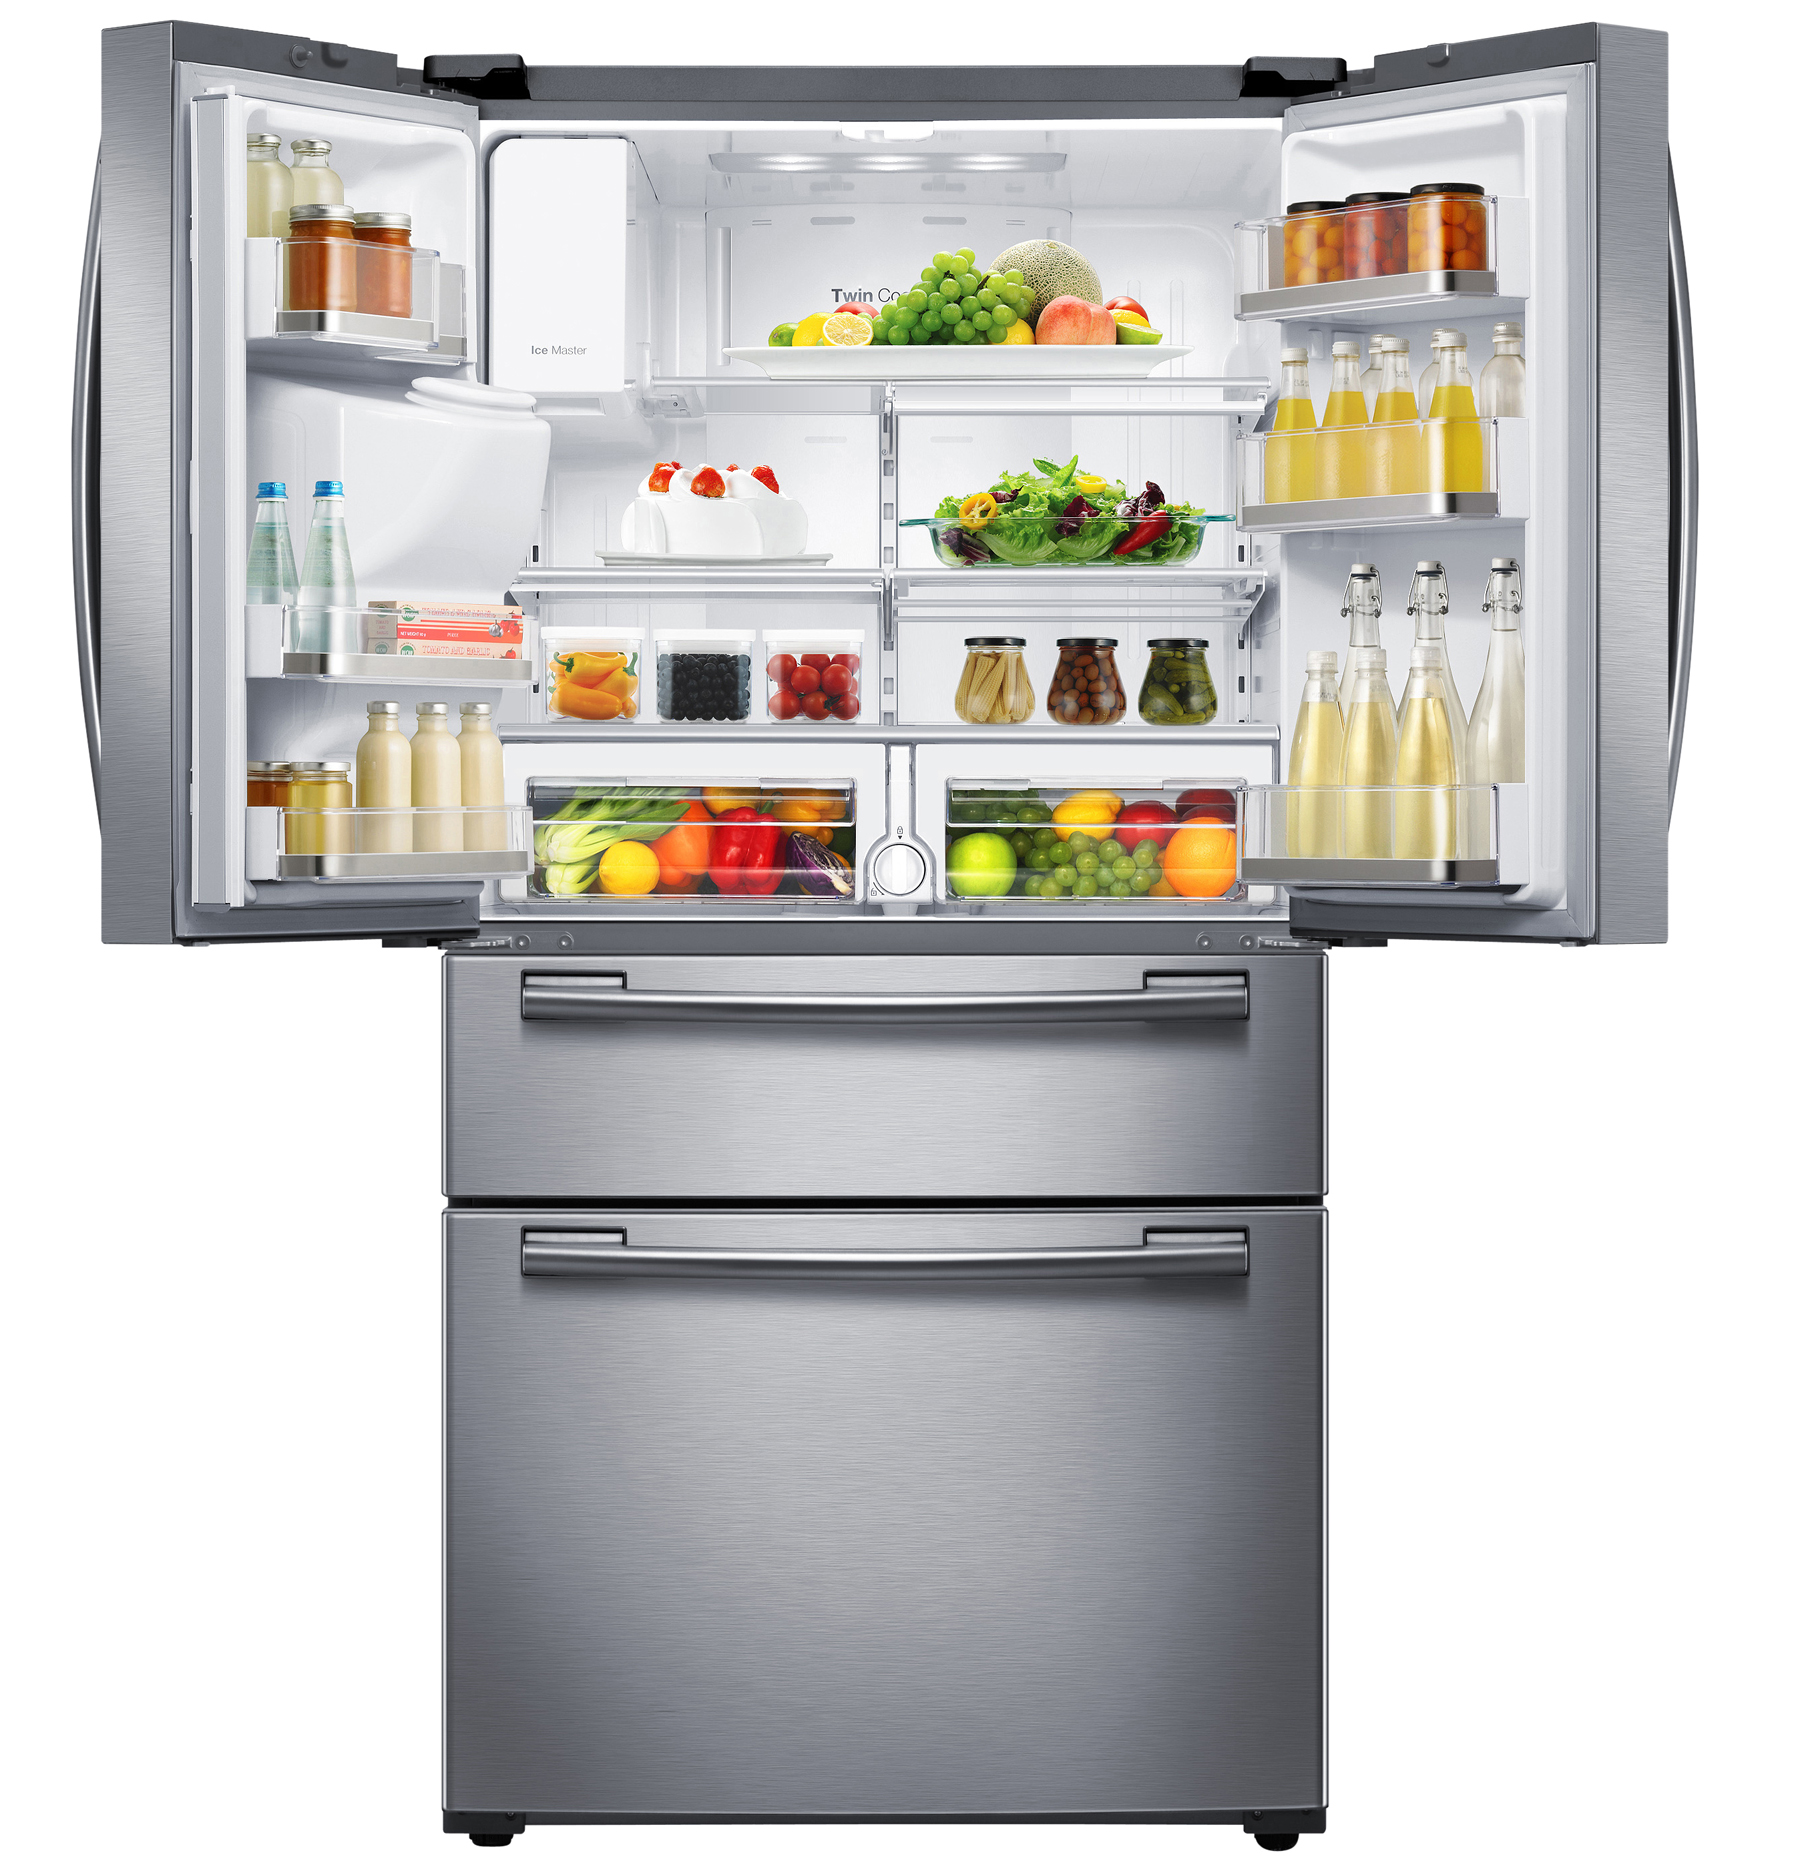 Samsung RF25HMEDBSR/AA 25 cu. ft. 4-Door French Door Refrigerator - Stainless Steel